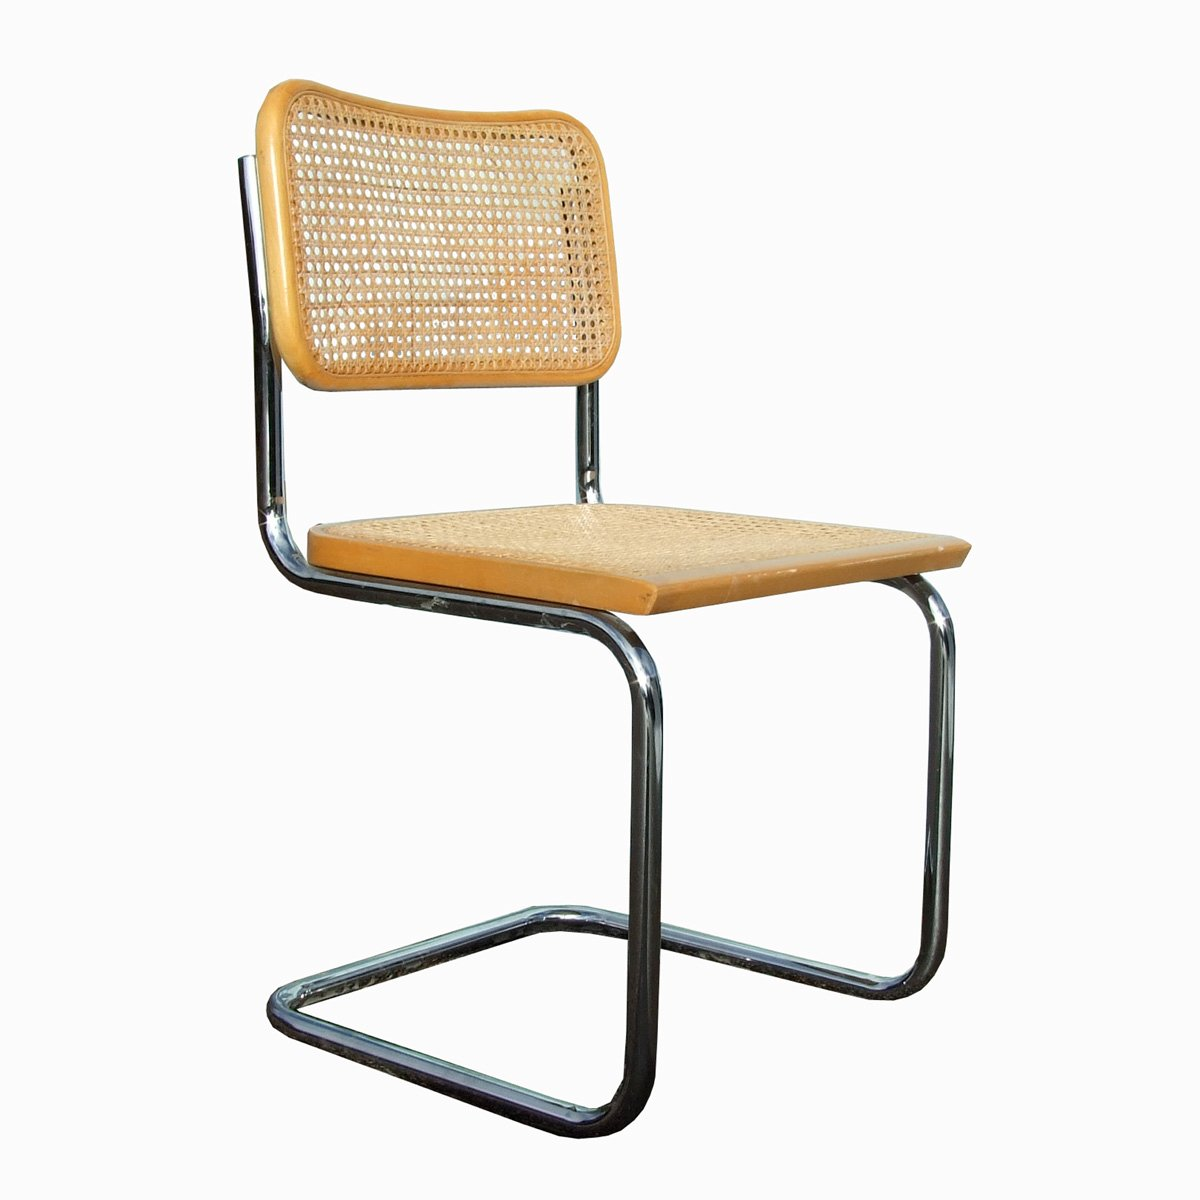 Bauhaus cesca chair by marcel breuer 1970s for sale at pamono for Bauhaus eames chair